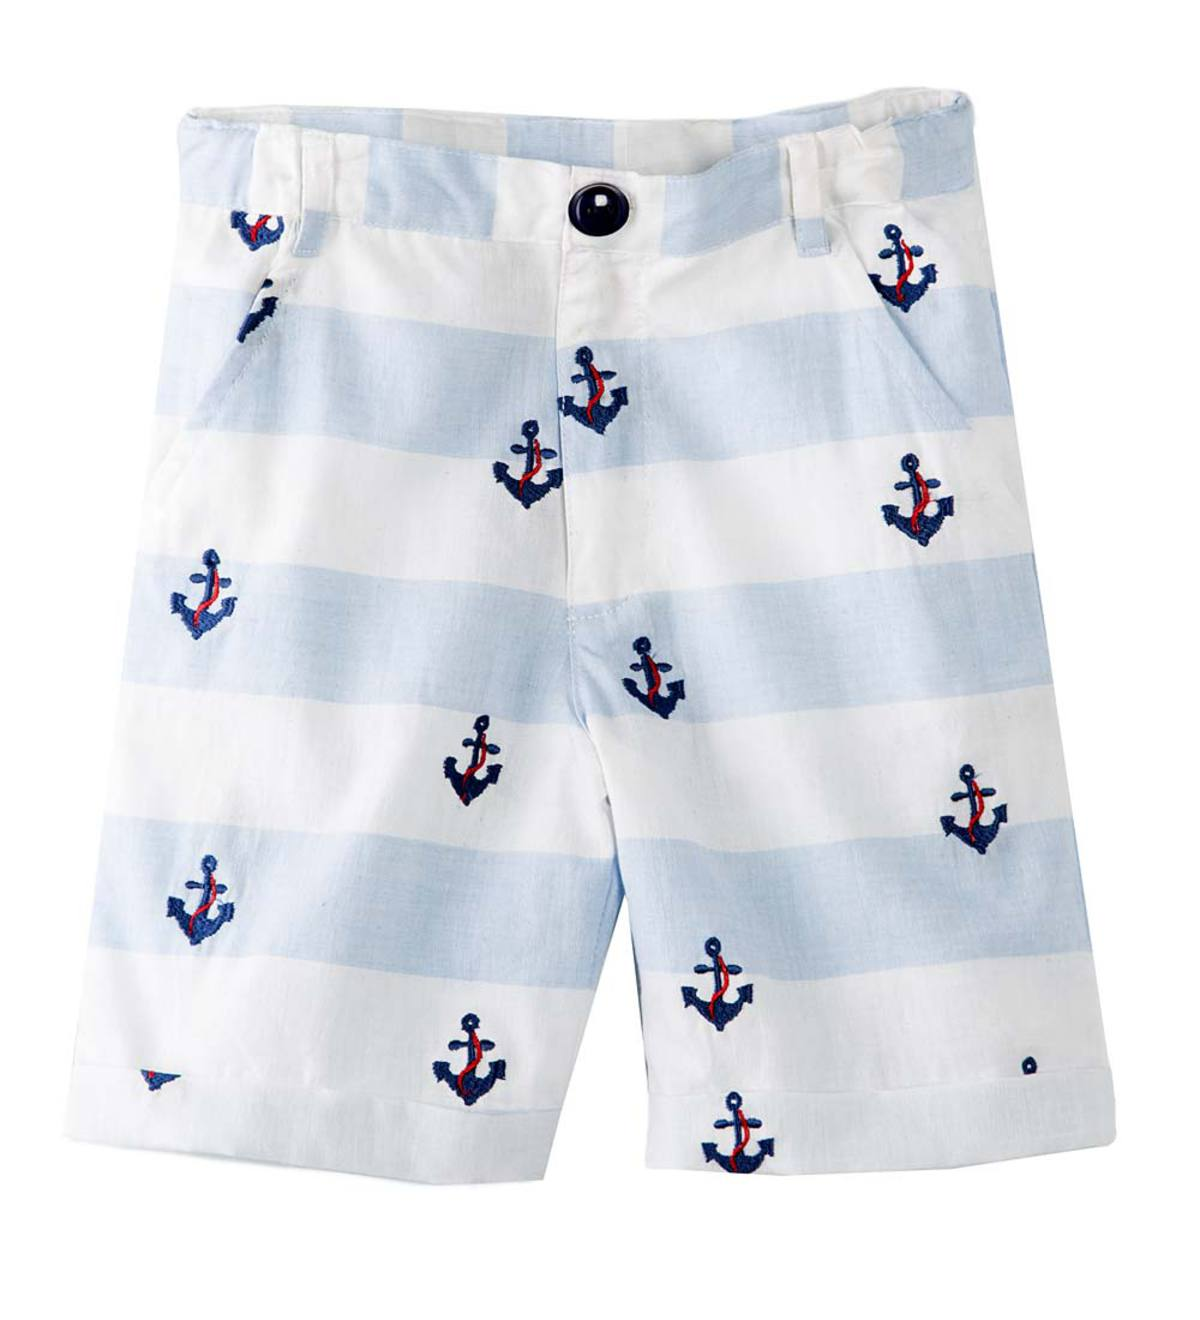 Embroidered Anchor Shorts - MLT - 10